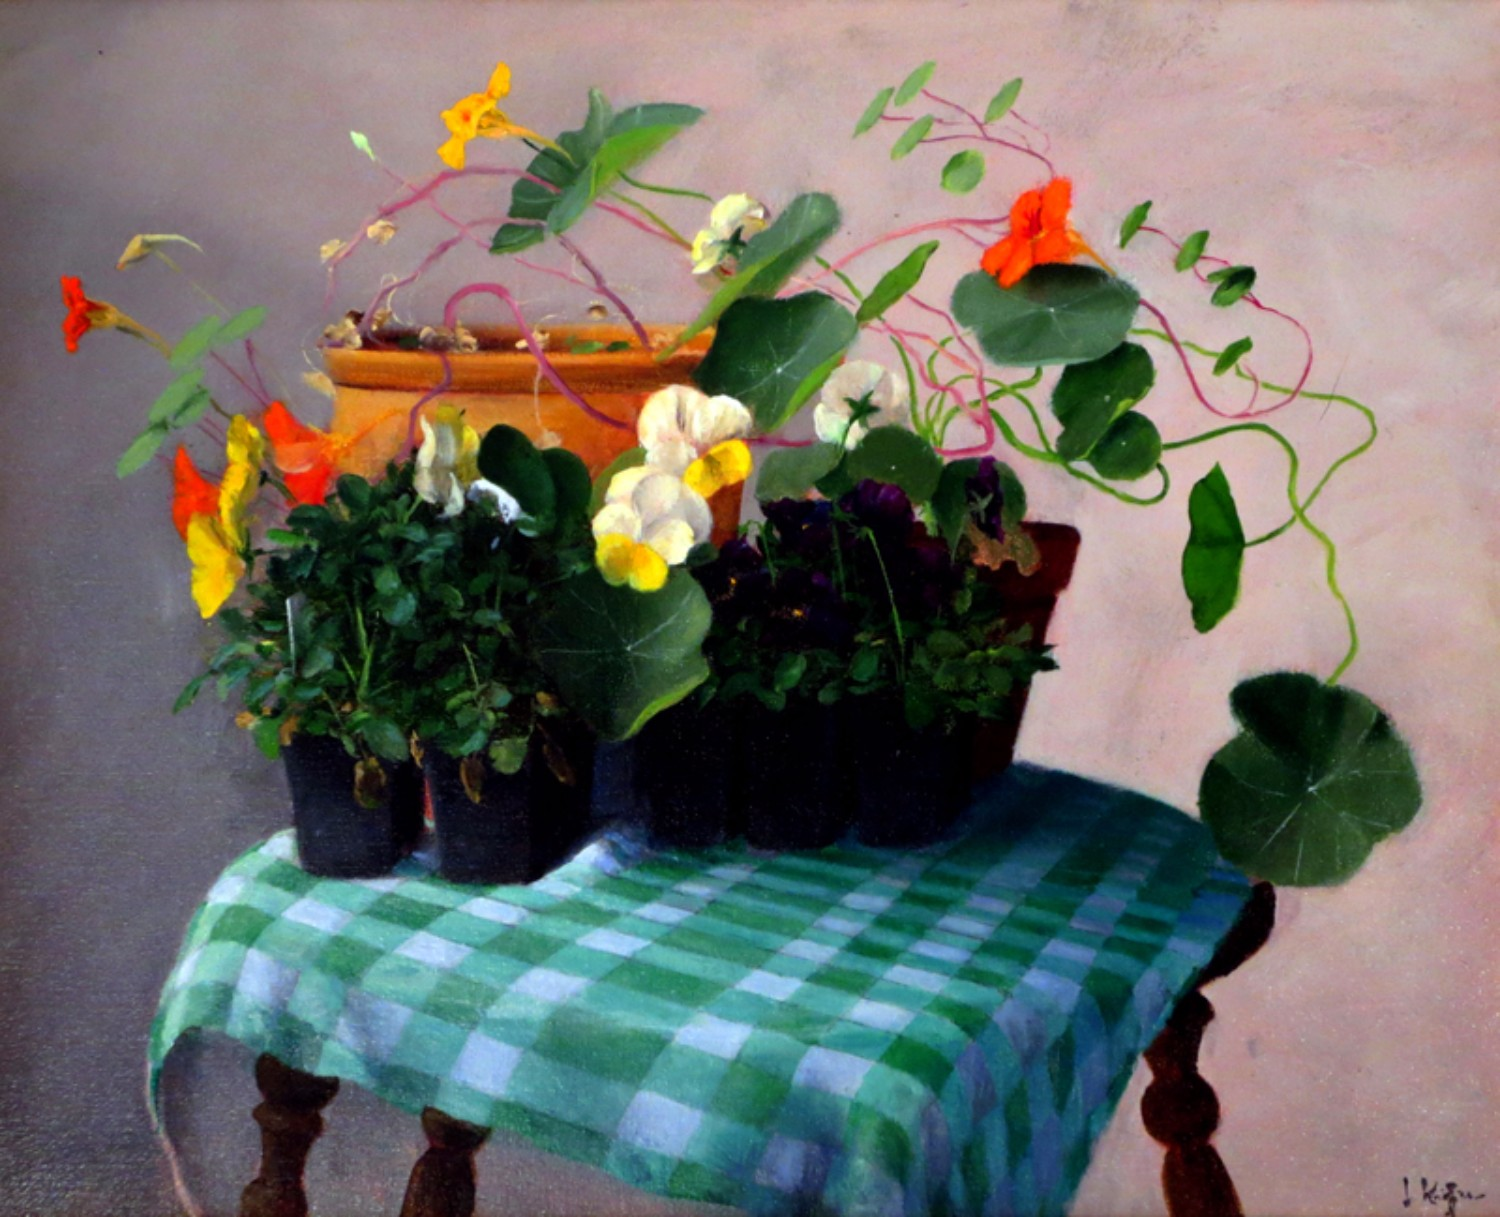 Box of Flowers, Green Checked Cloth